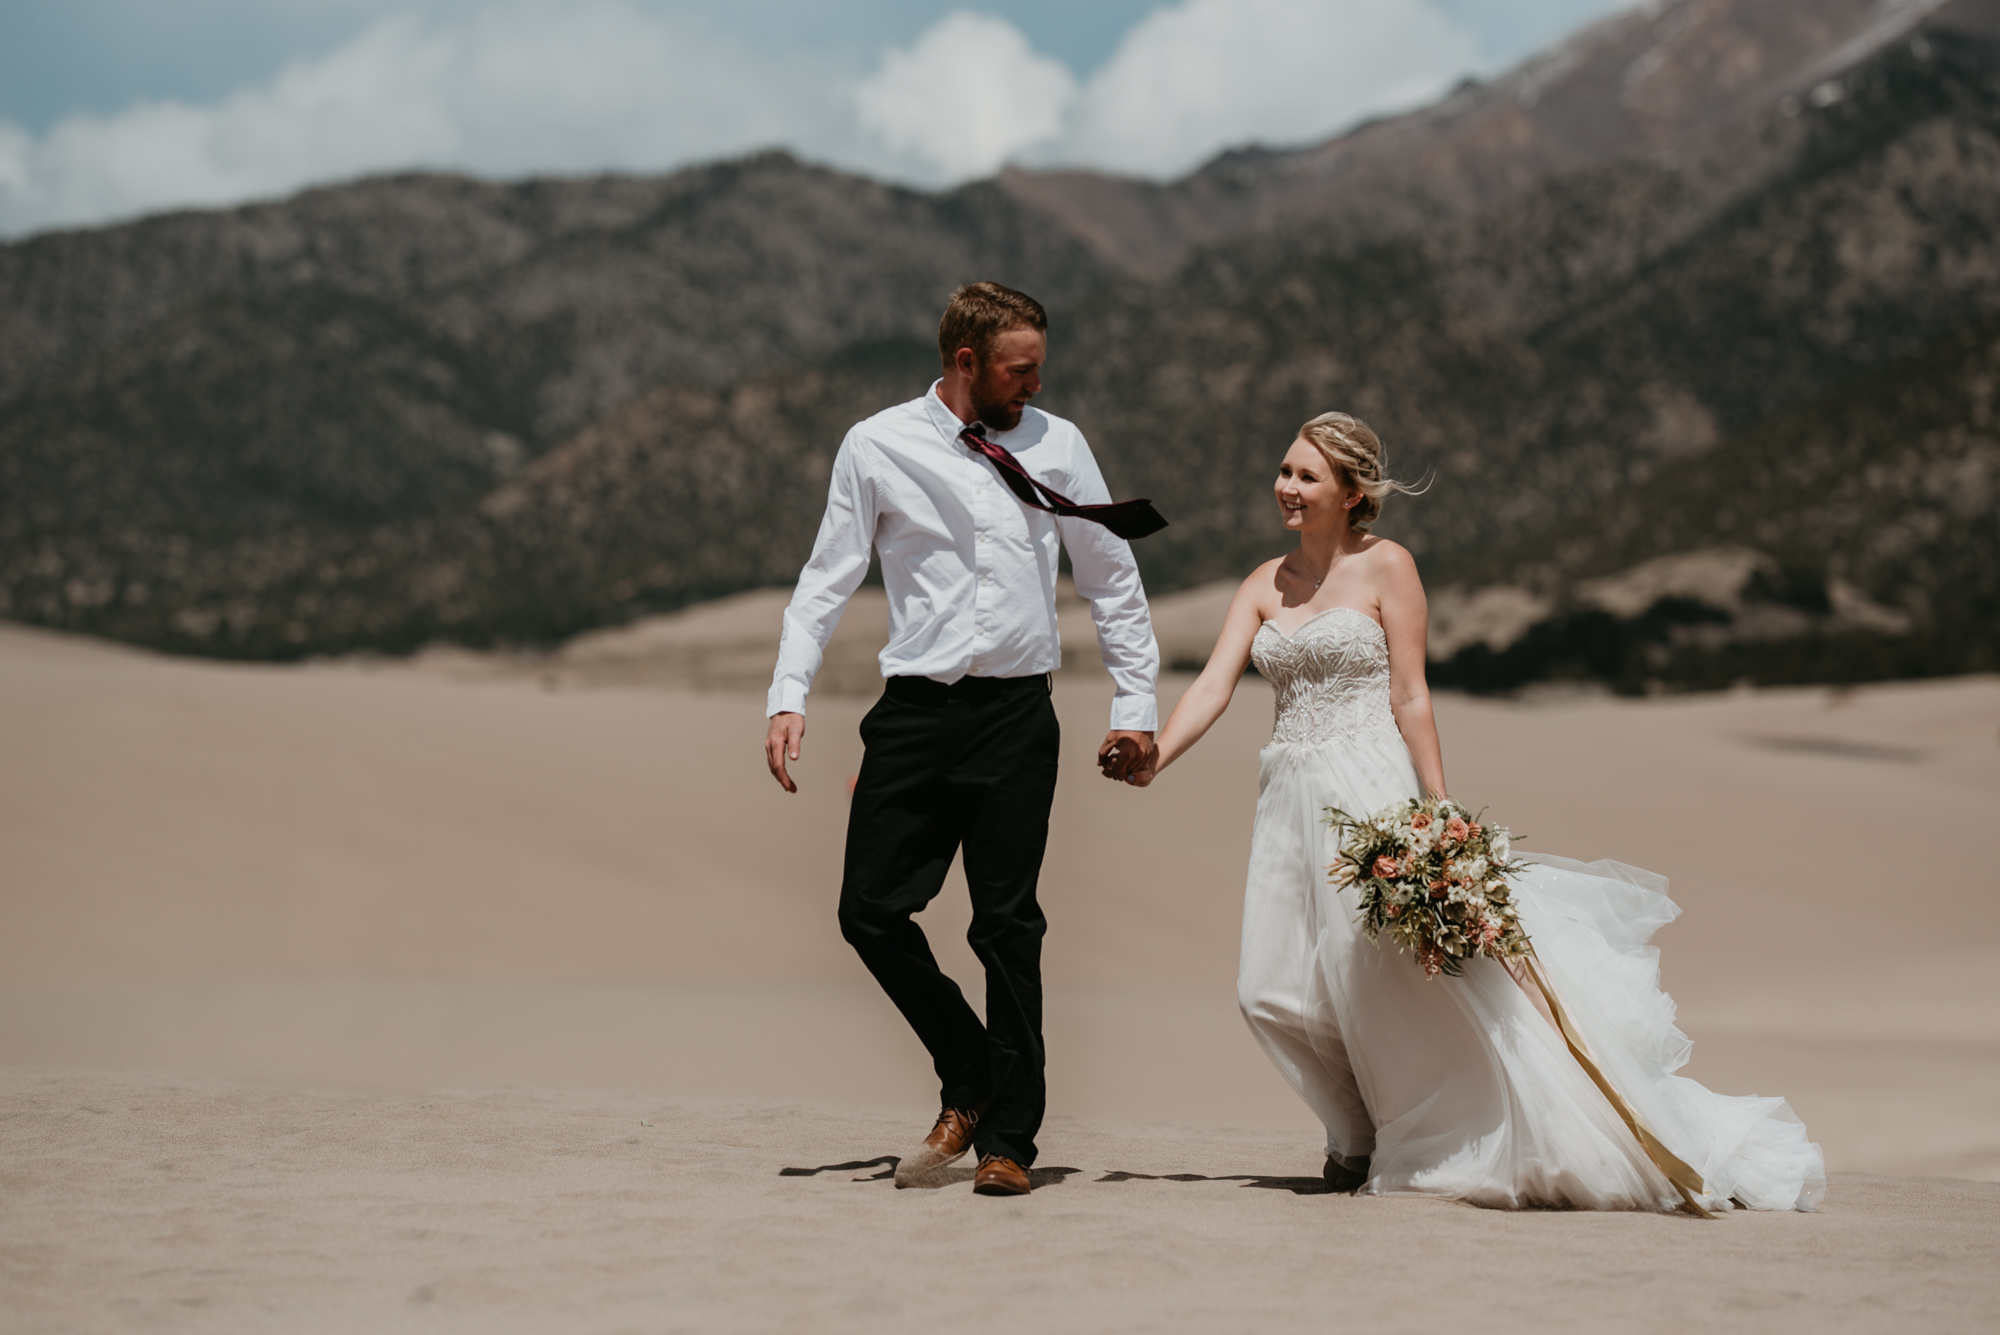 Doug and Kaitlyn walk hand in hand across the sand dunes in Southern Colorado.